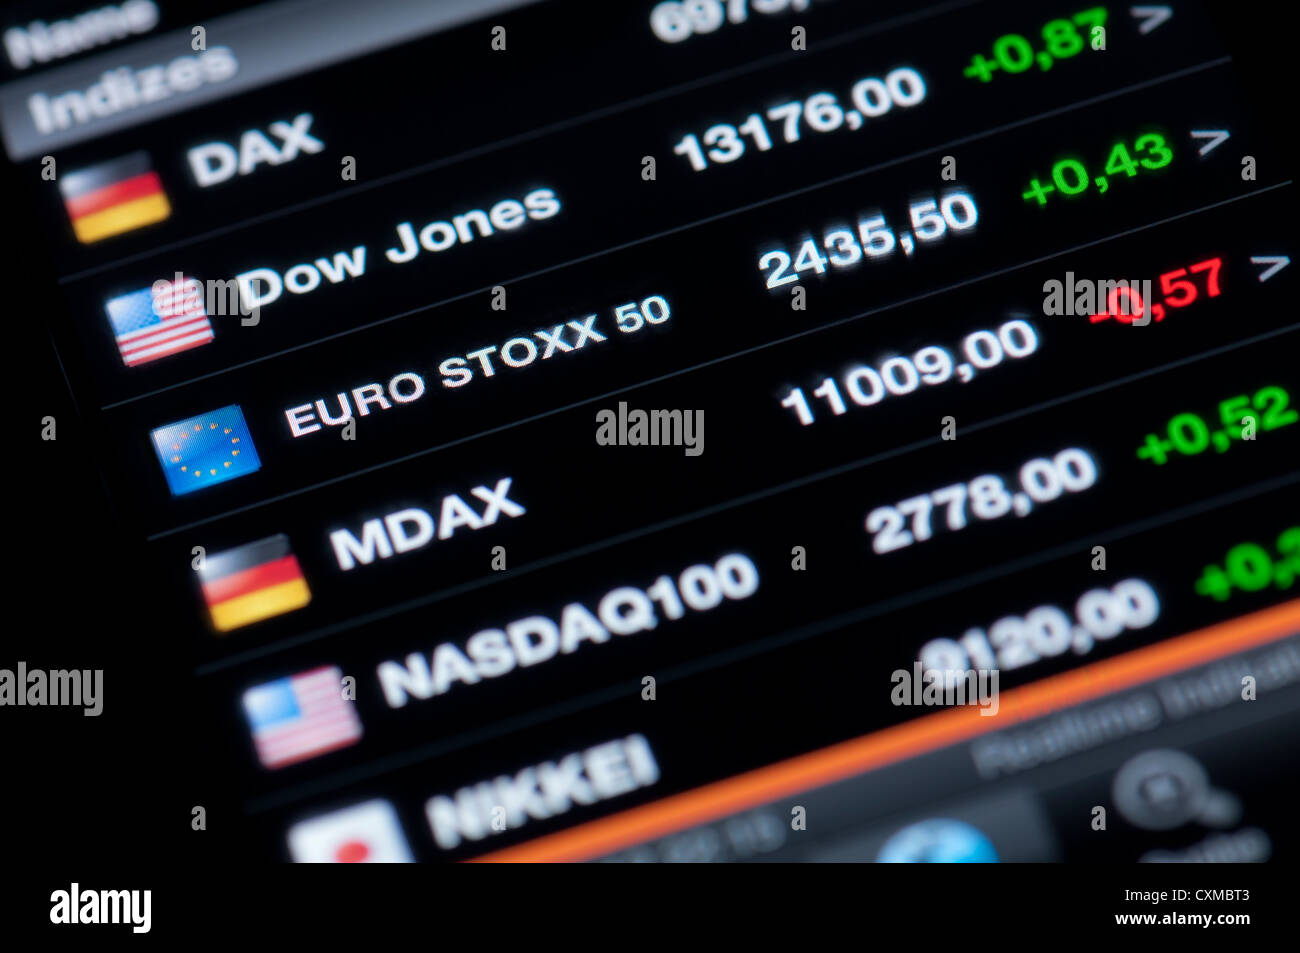 List of stock market indices on a high resolution LCD screen